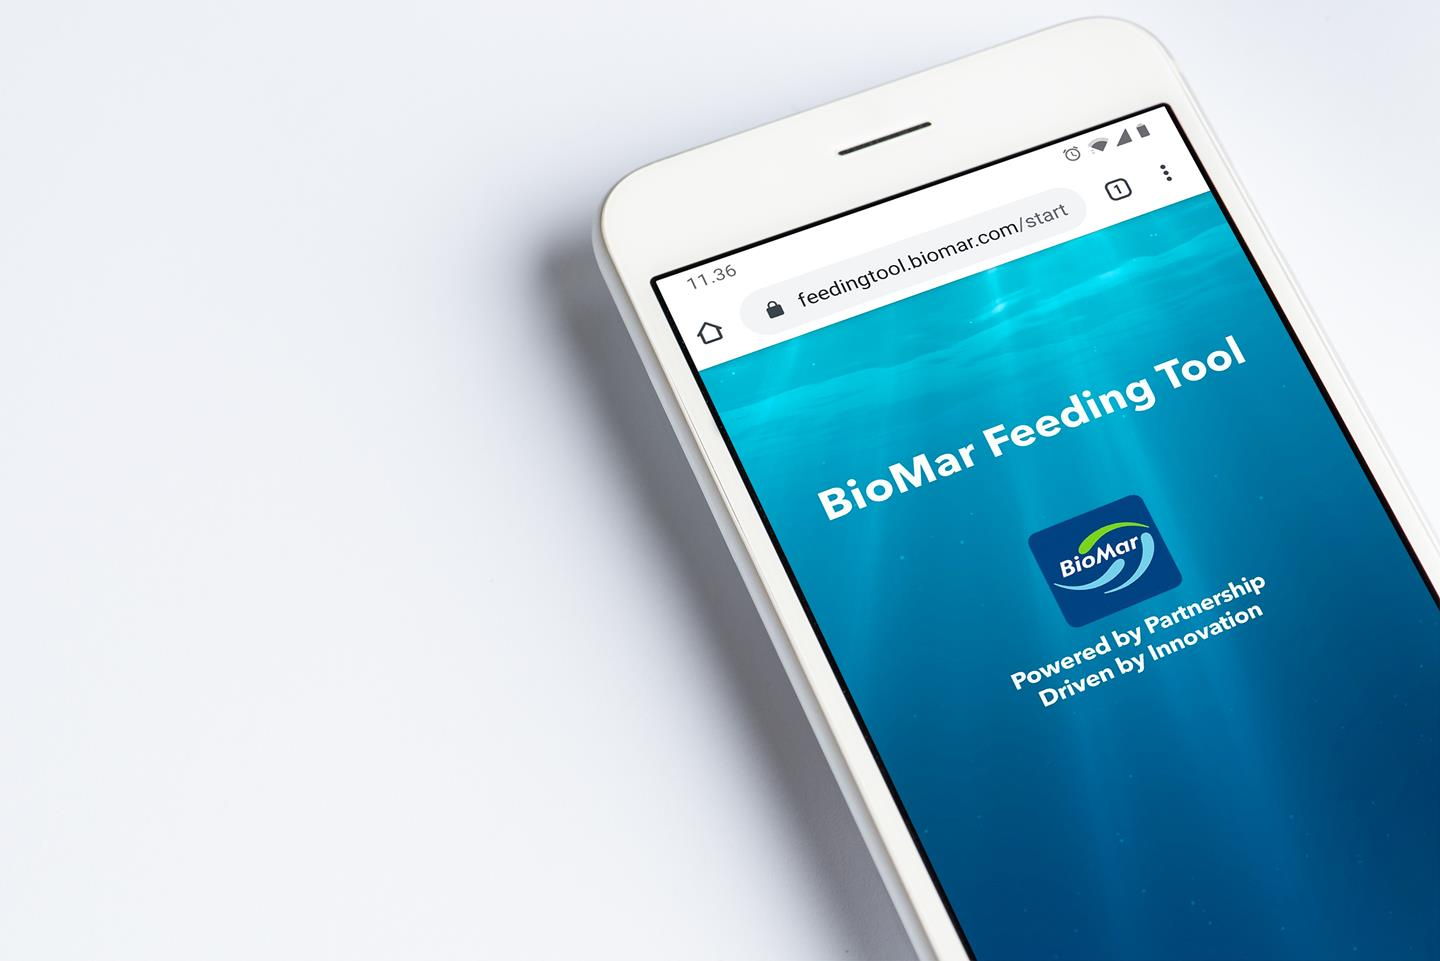 The BioMar Feeding Tool is an online service providing recommendations for the use of BioMar feeds in an efficient and easy-to-follow way.